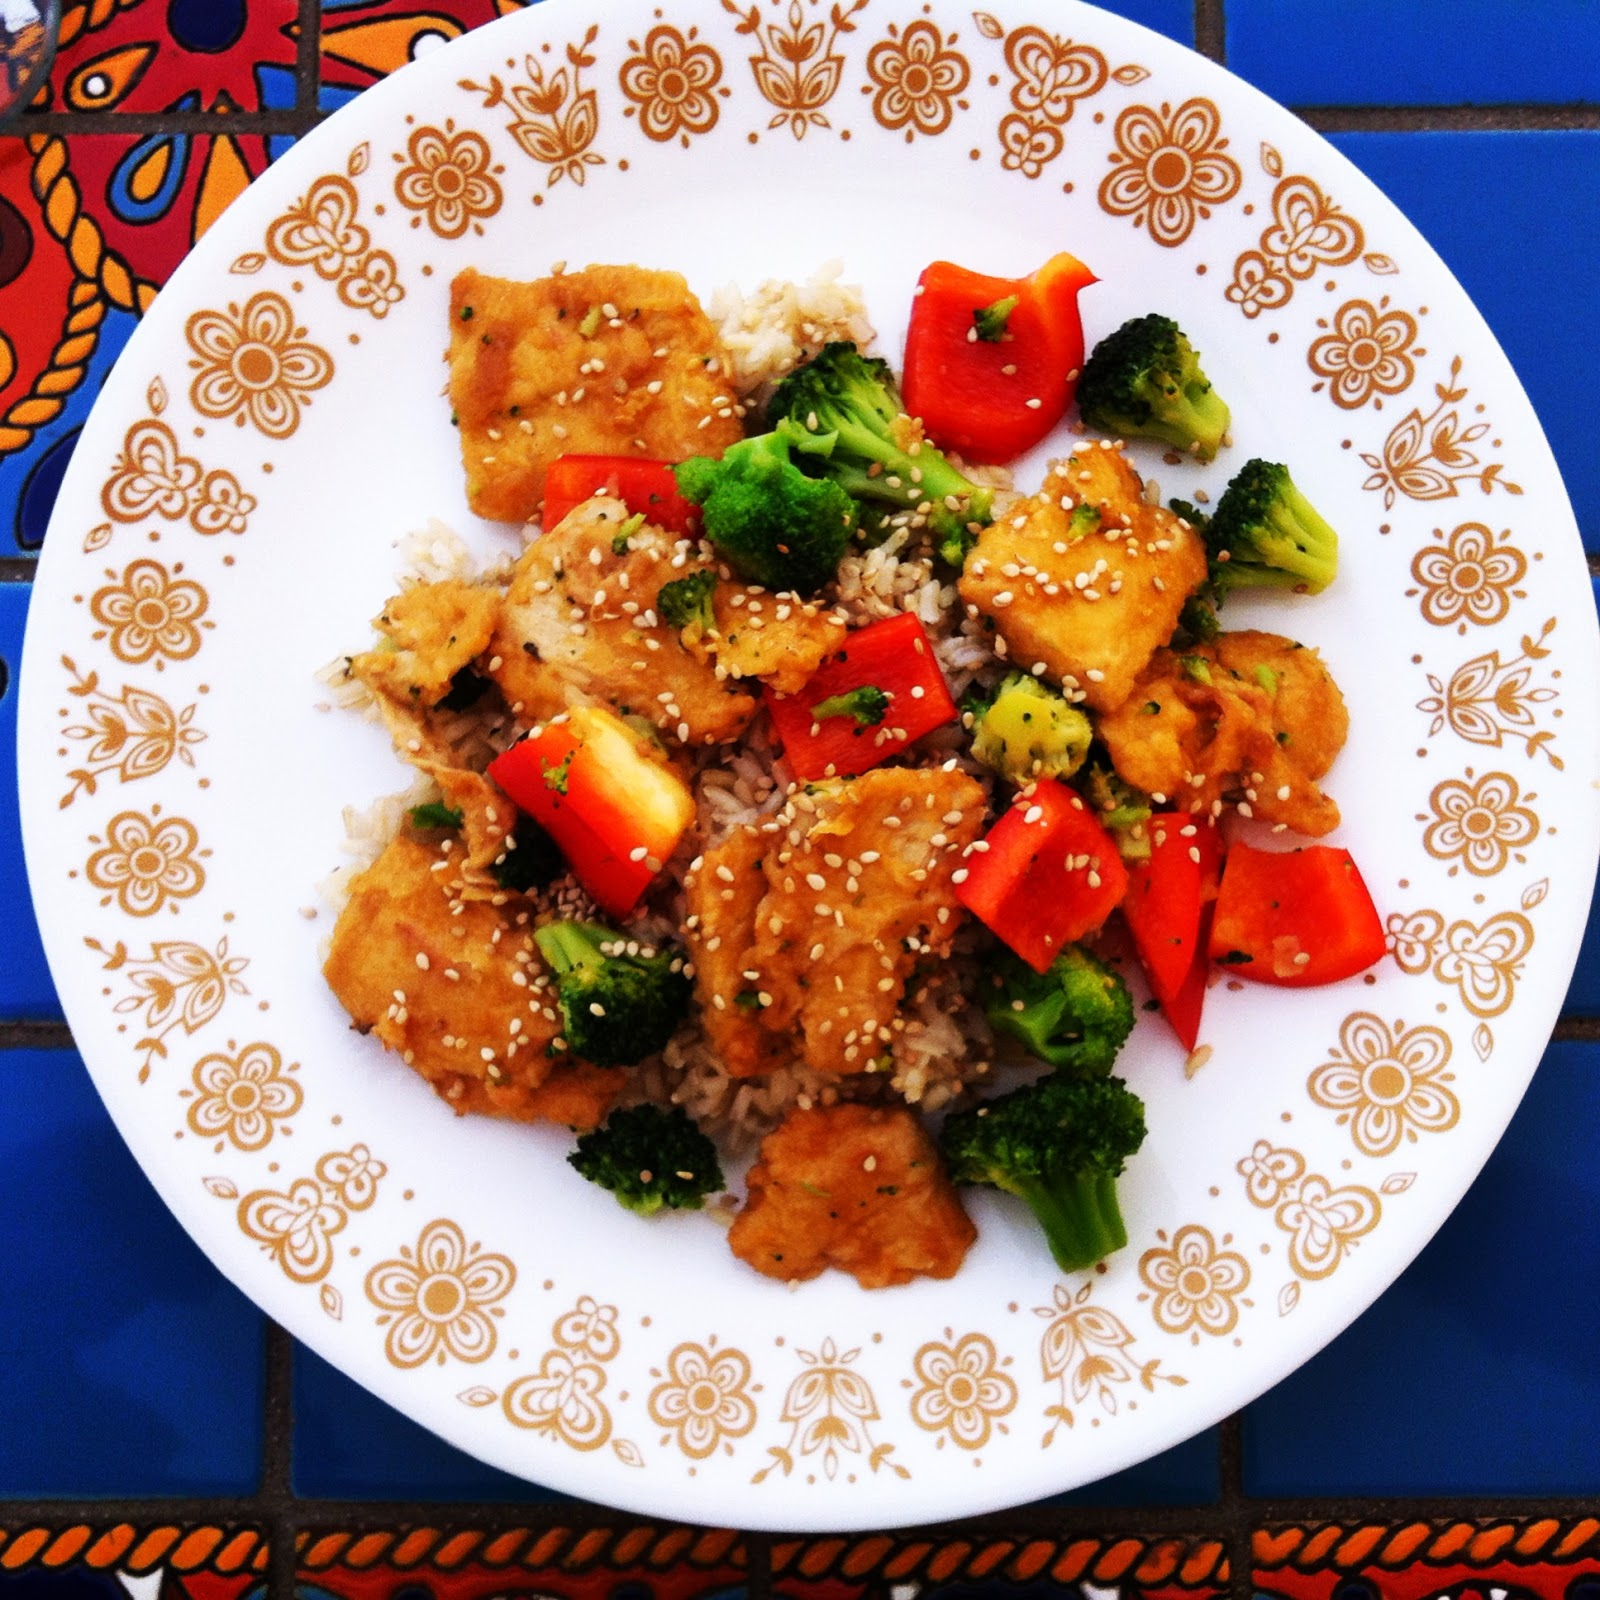 Vegetarian Vegan Gardein Mandarin Orange Crispy Chicken